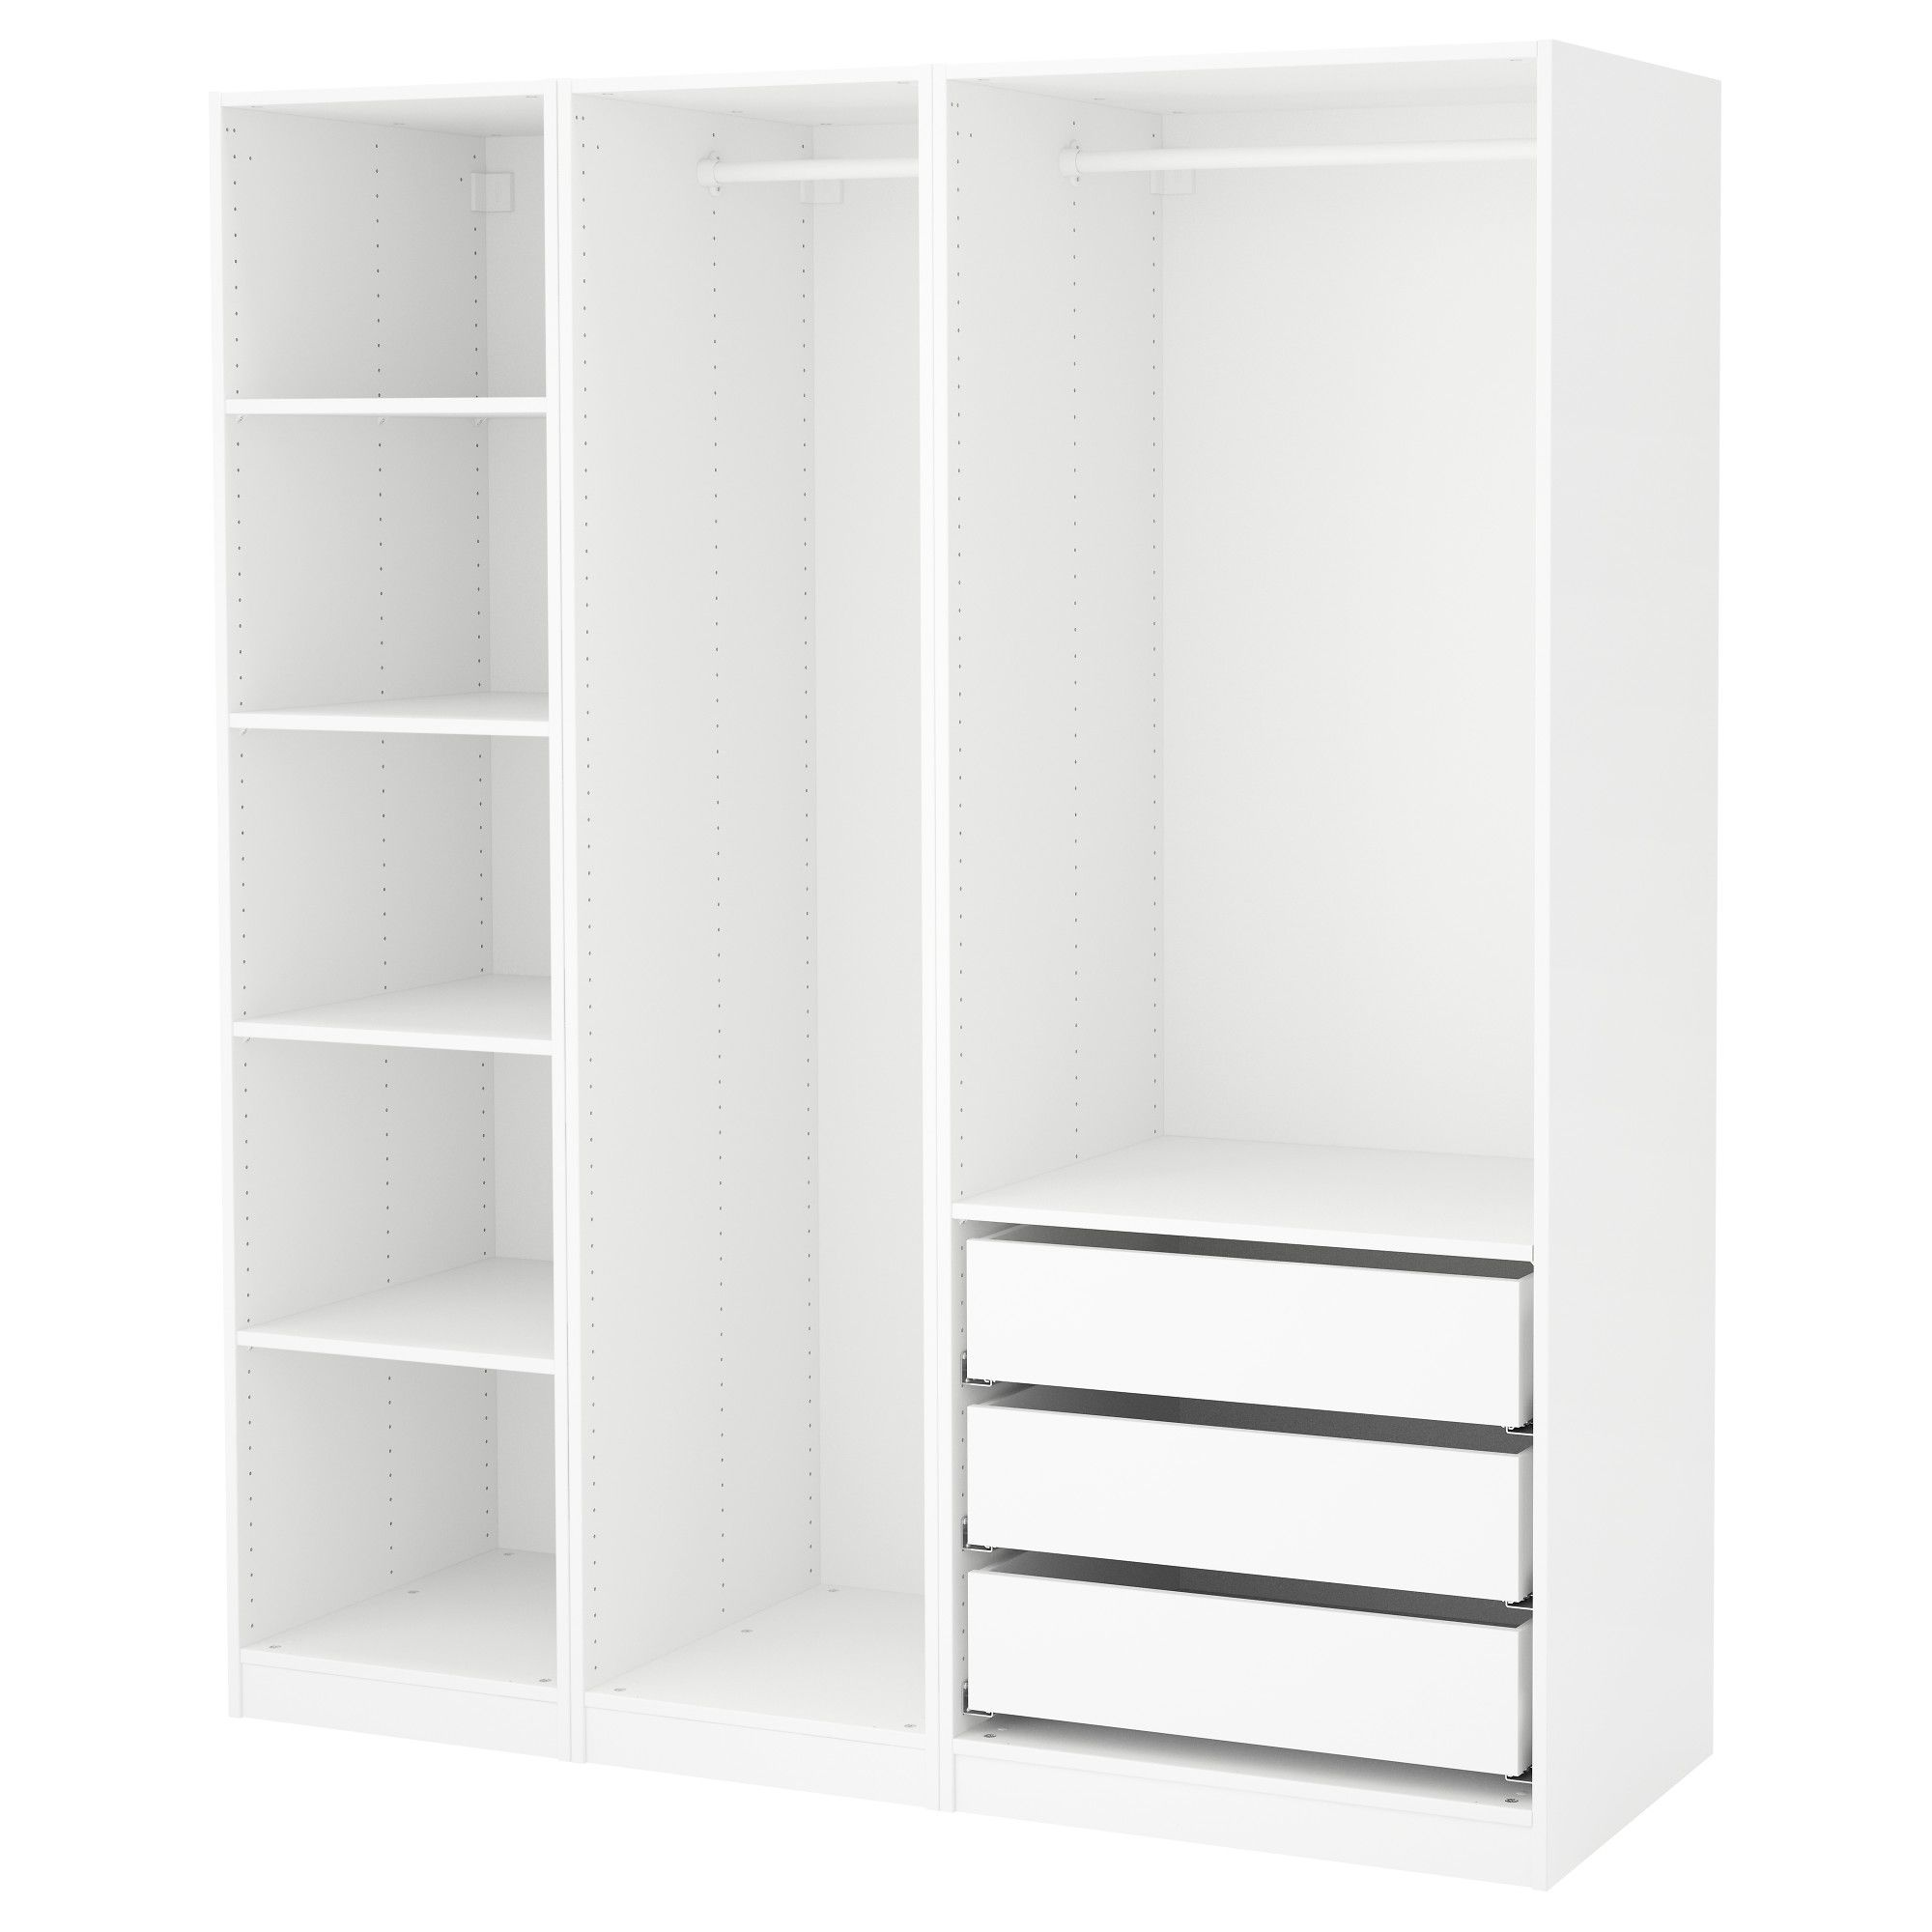 fab pax by the wtfab san custom closet lifestyle ikea popular wardrobe blogger review francisco what